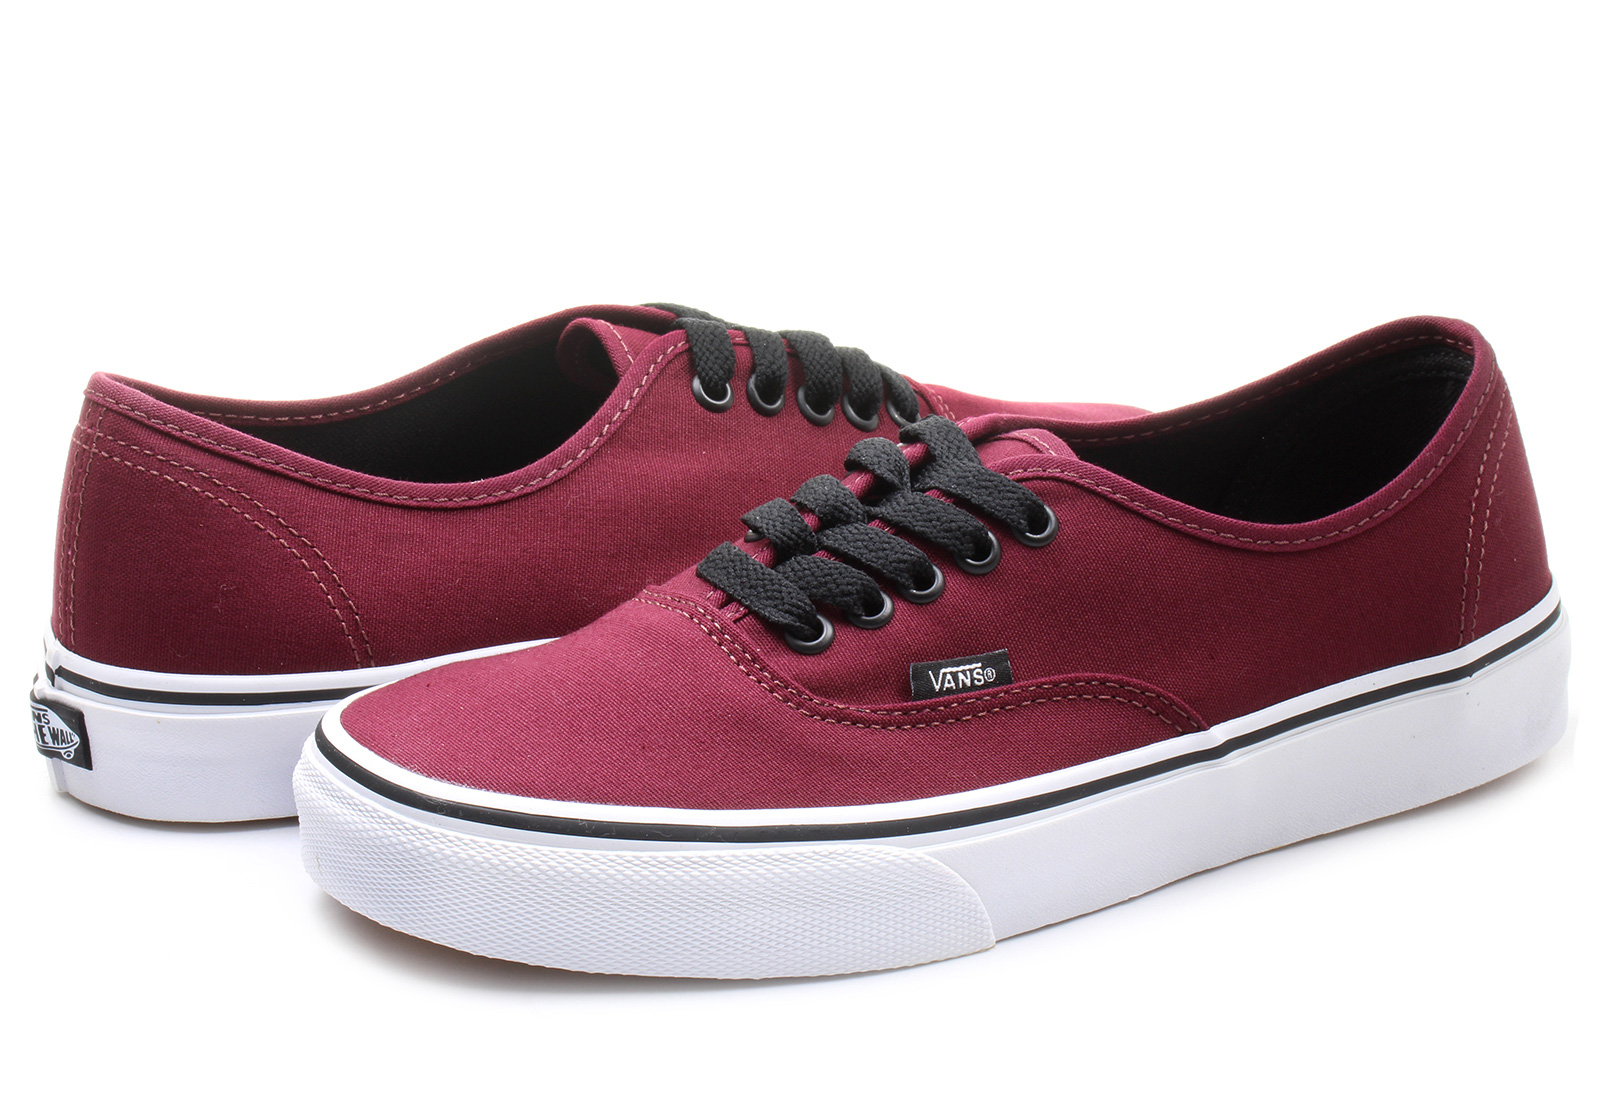 Vans Tenisky Office Shoes